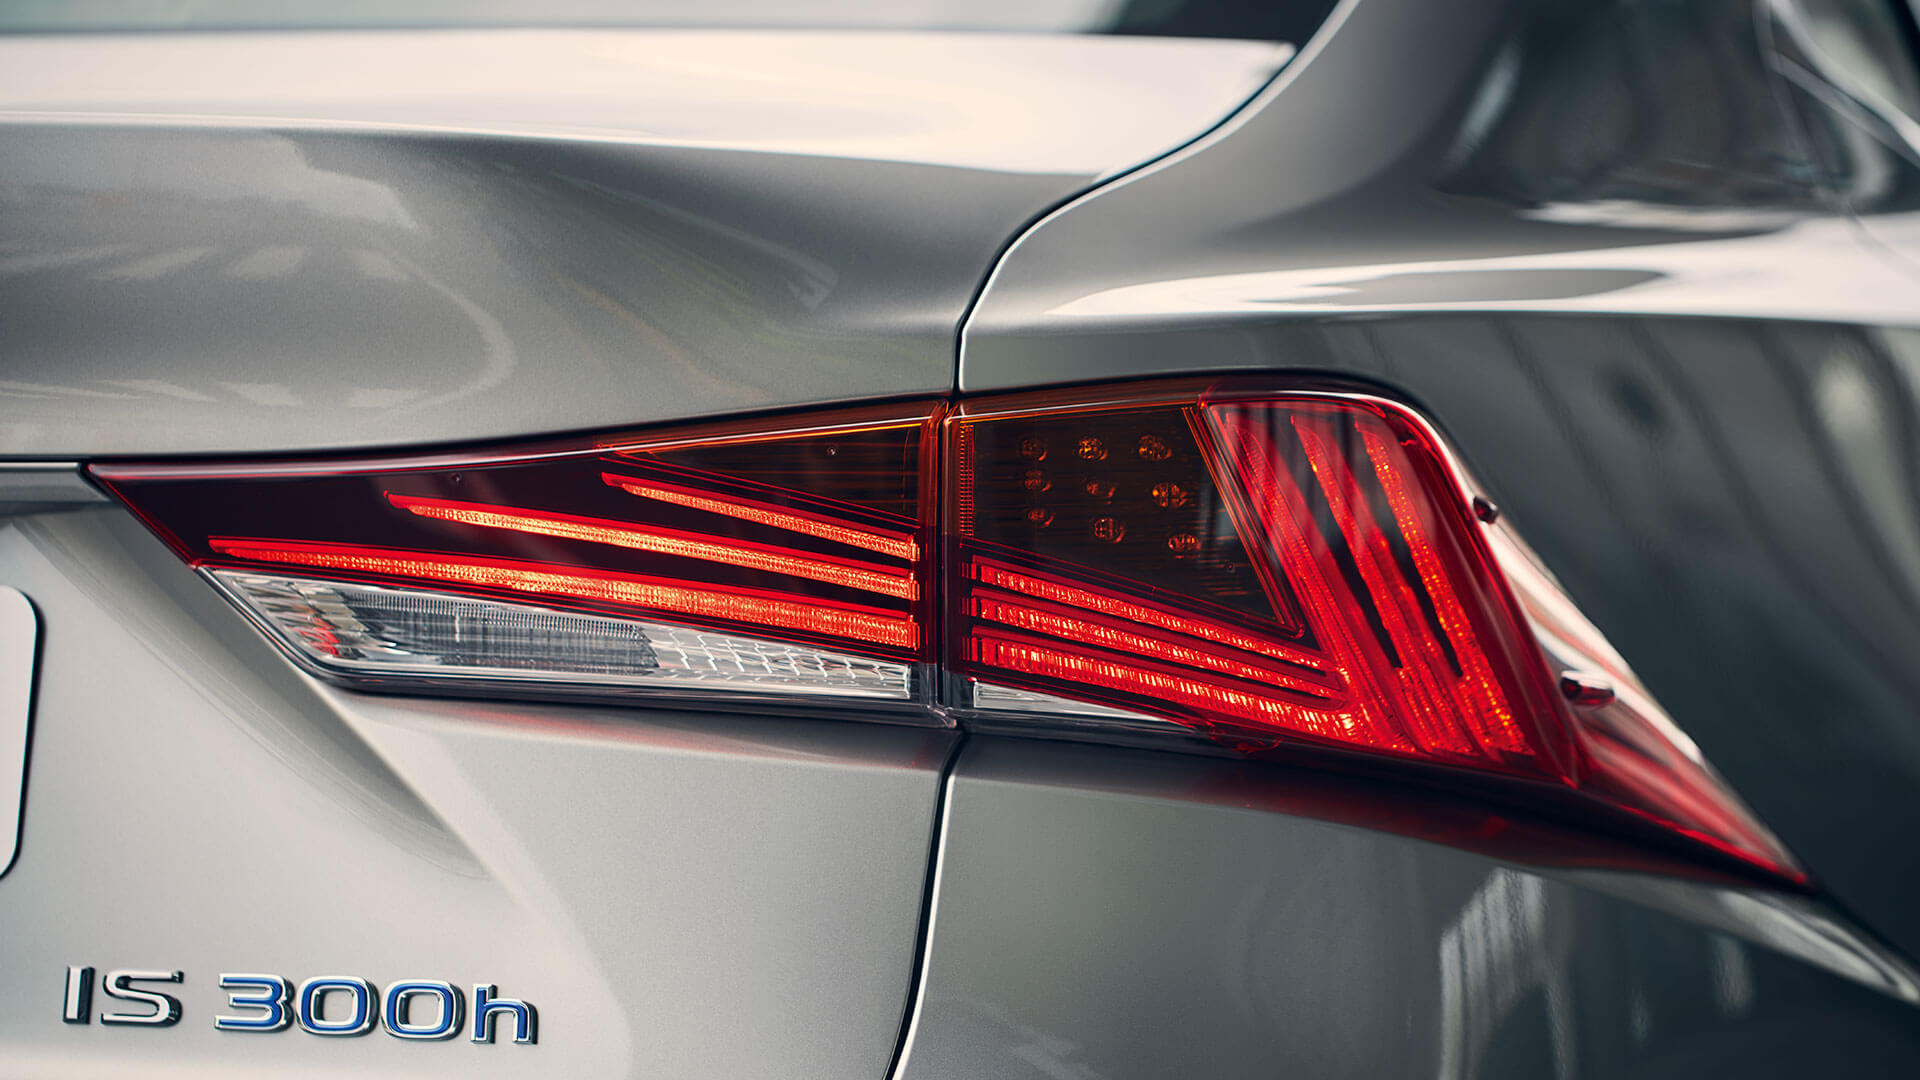 2017 lexus is 300h features led rear lights